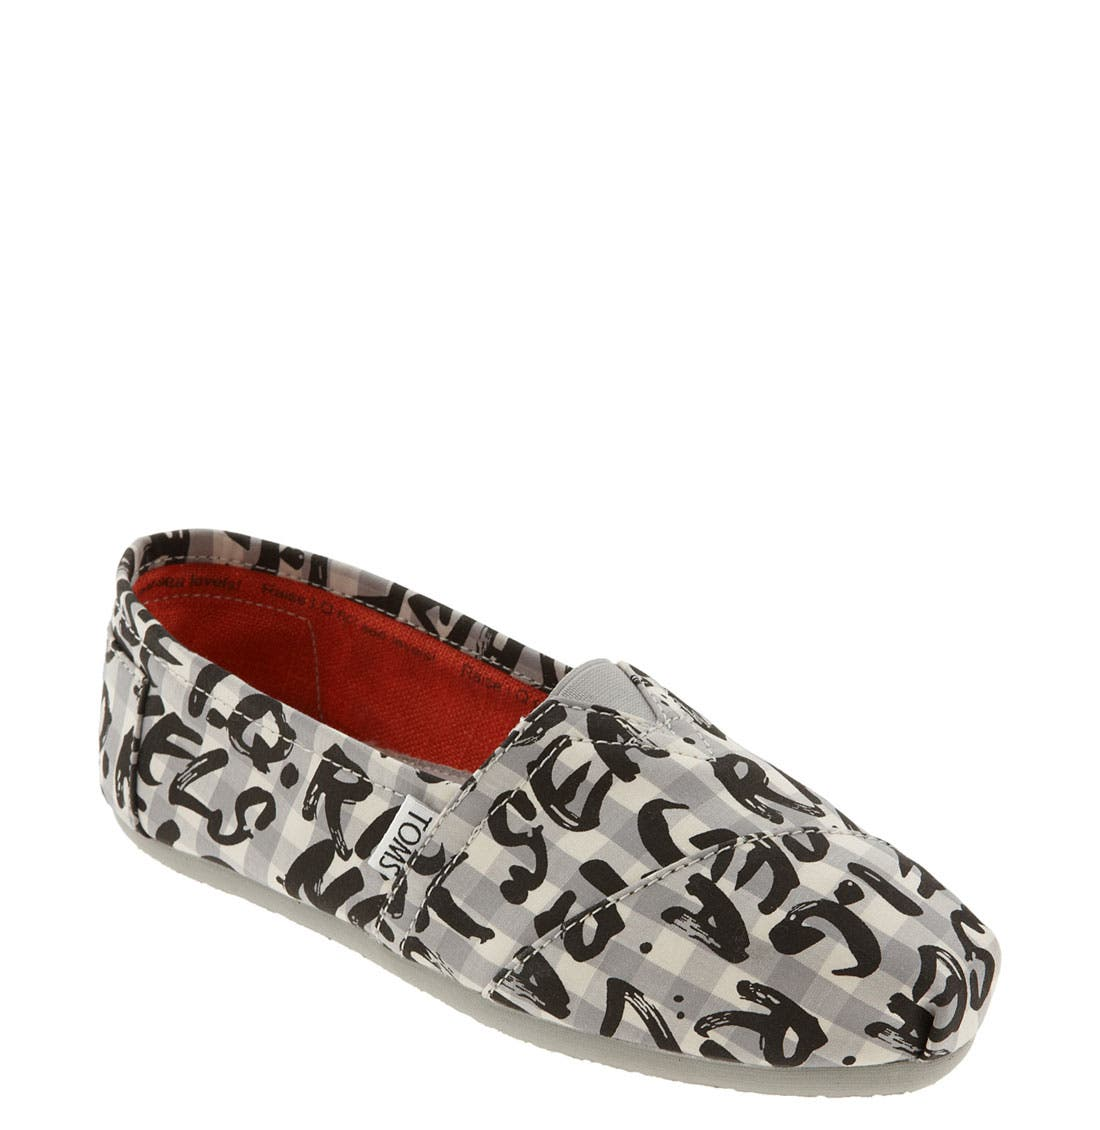 TOMS,                             'Dare to Teach' Slip-On,                             Main thumbnail 1, color,                             001